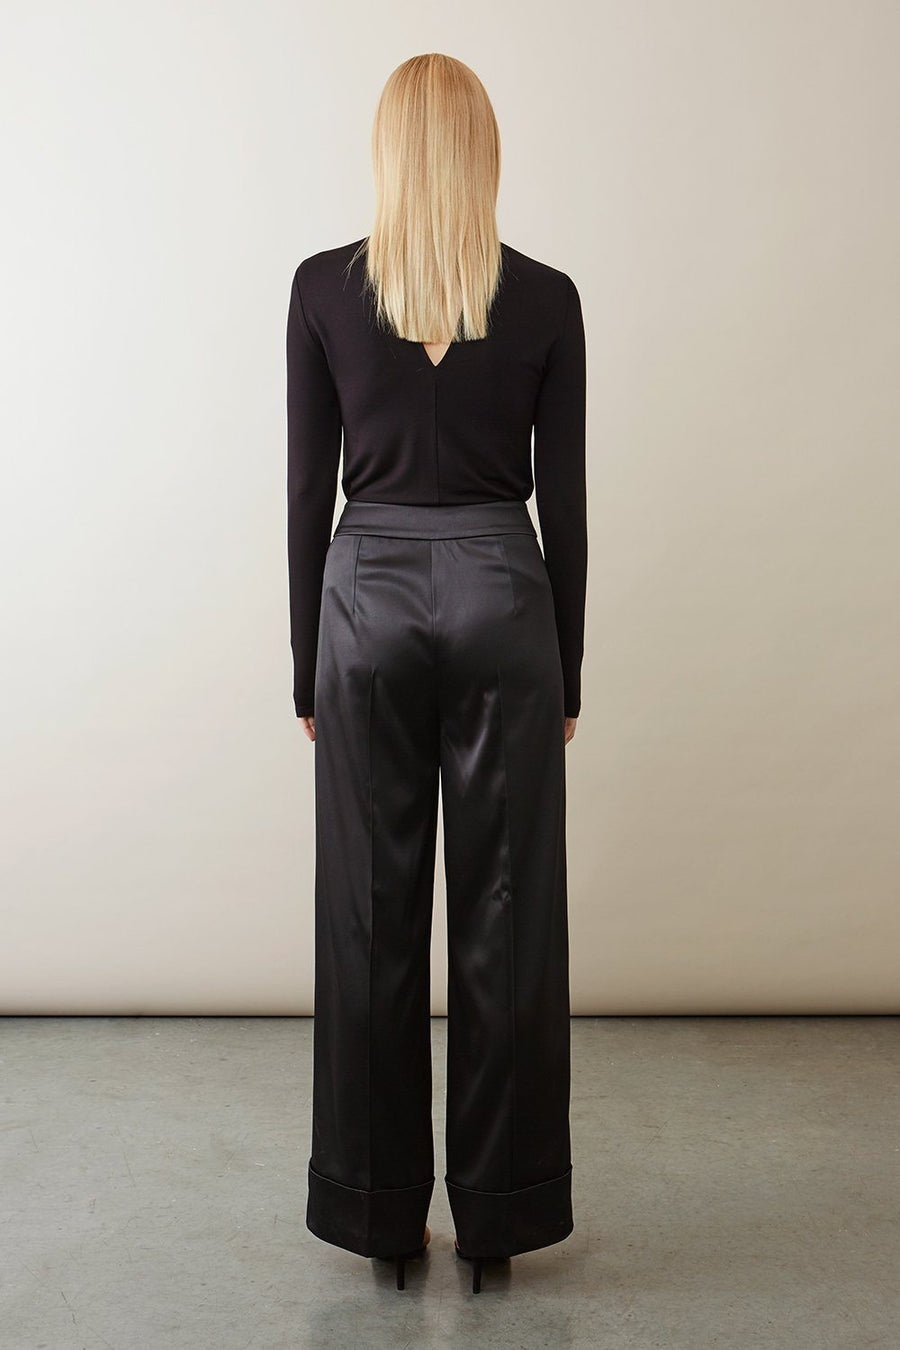 BOGAR TROUSERS - BLACK SATIN Trousers Stylein